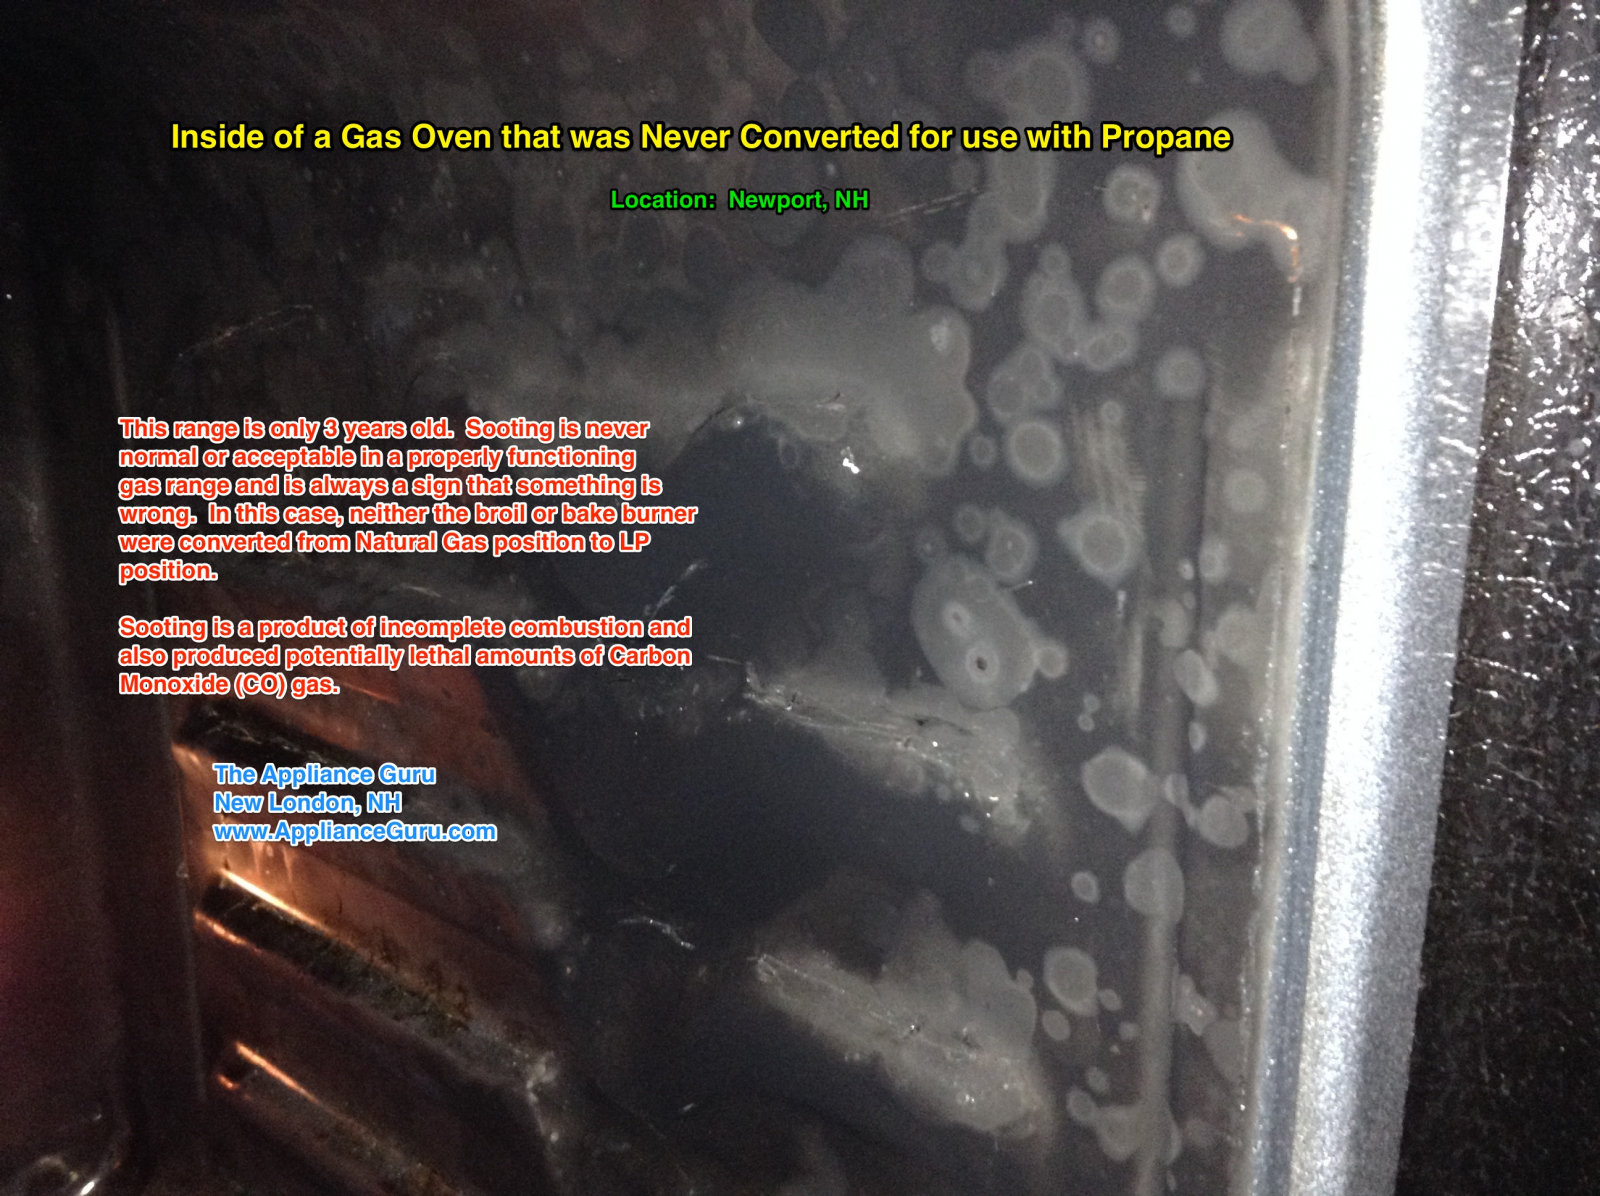 Inside A Gas Oven that Was Never Converted For Use with Propane